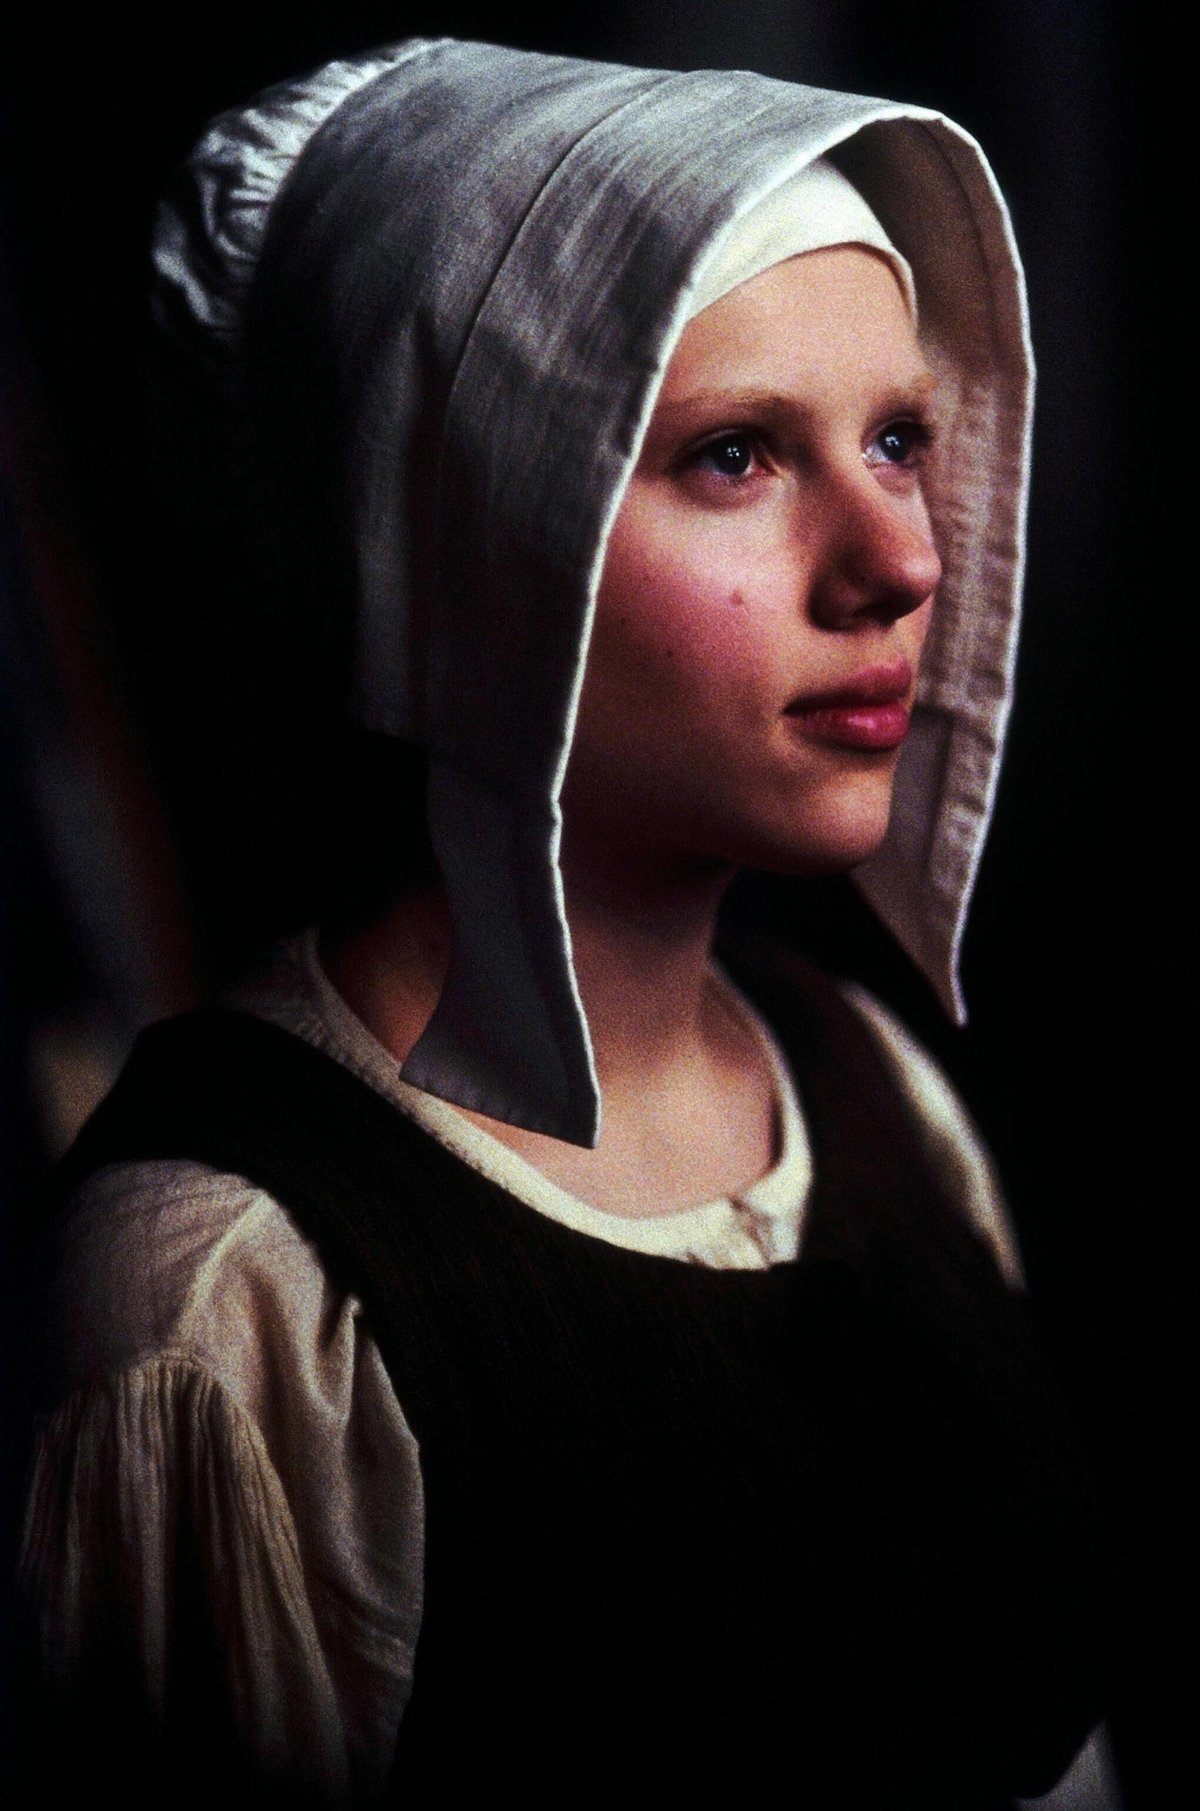 Scarlett Johansson was only 17 when she was cast in the role of Griet in the 2003 drama film Girl with a Pearl Earring